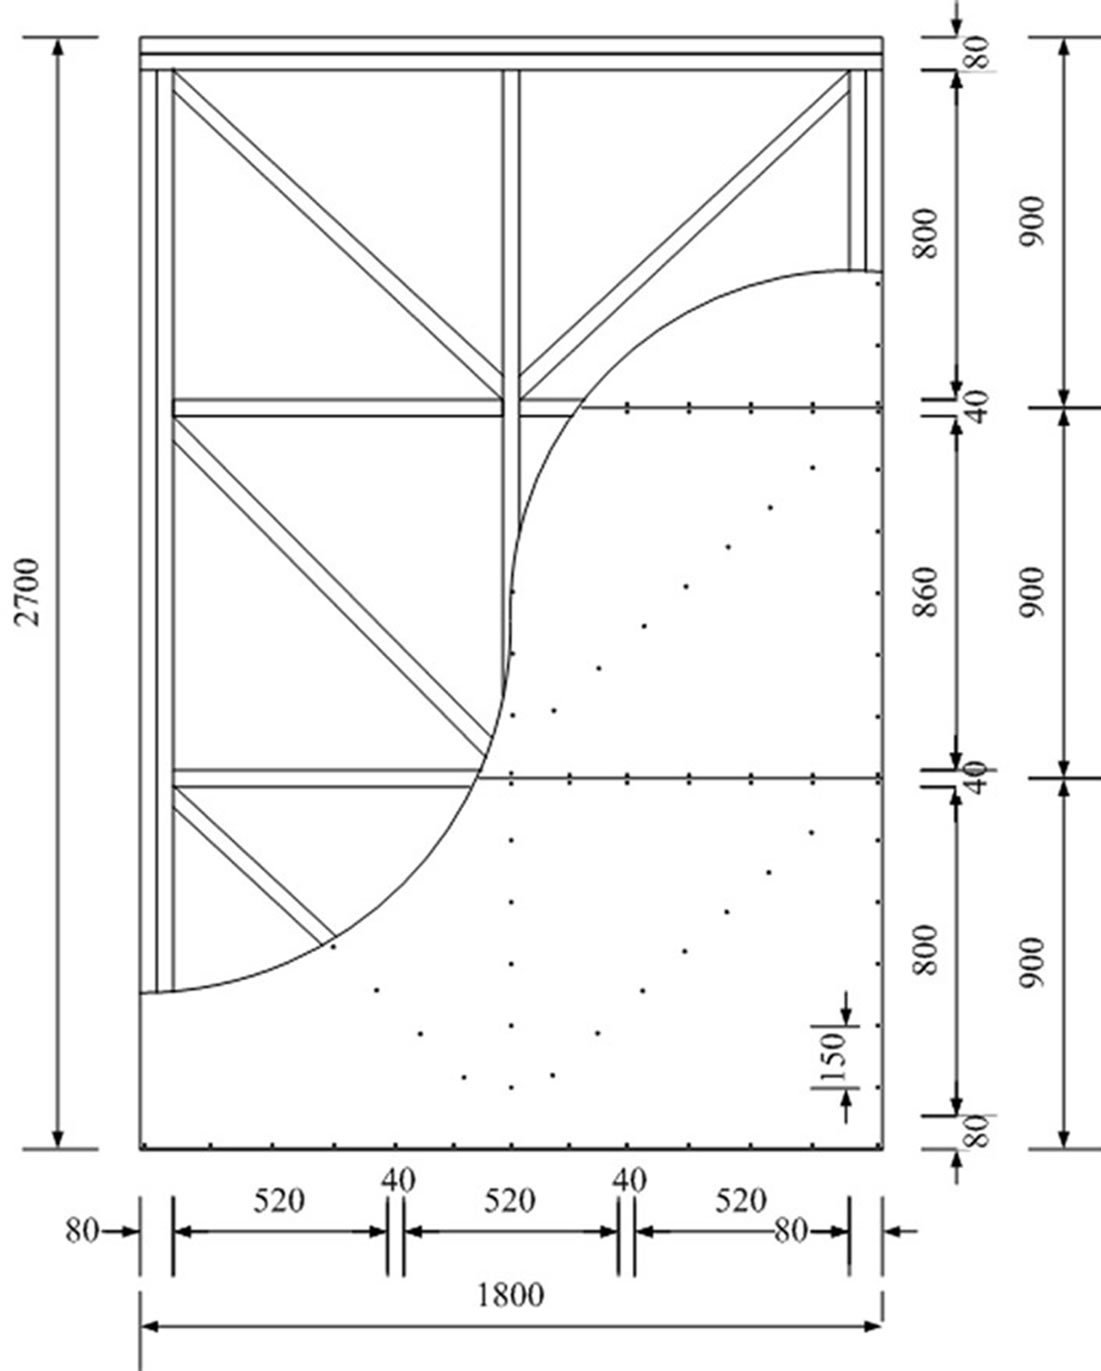 Prediction of nonlinear cyclic behaviors of shear wall for Structural fiberboard sheathing